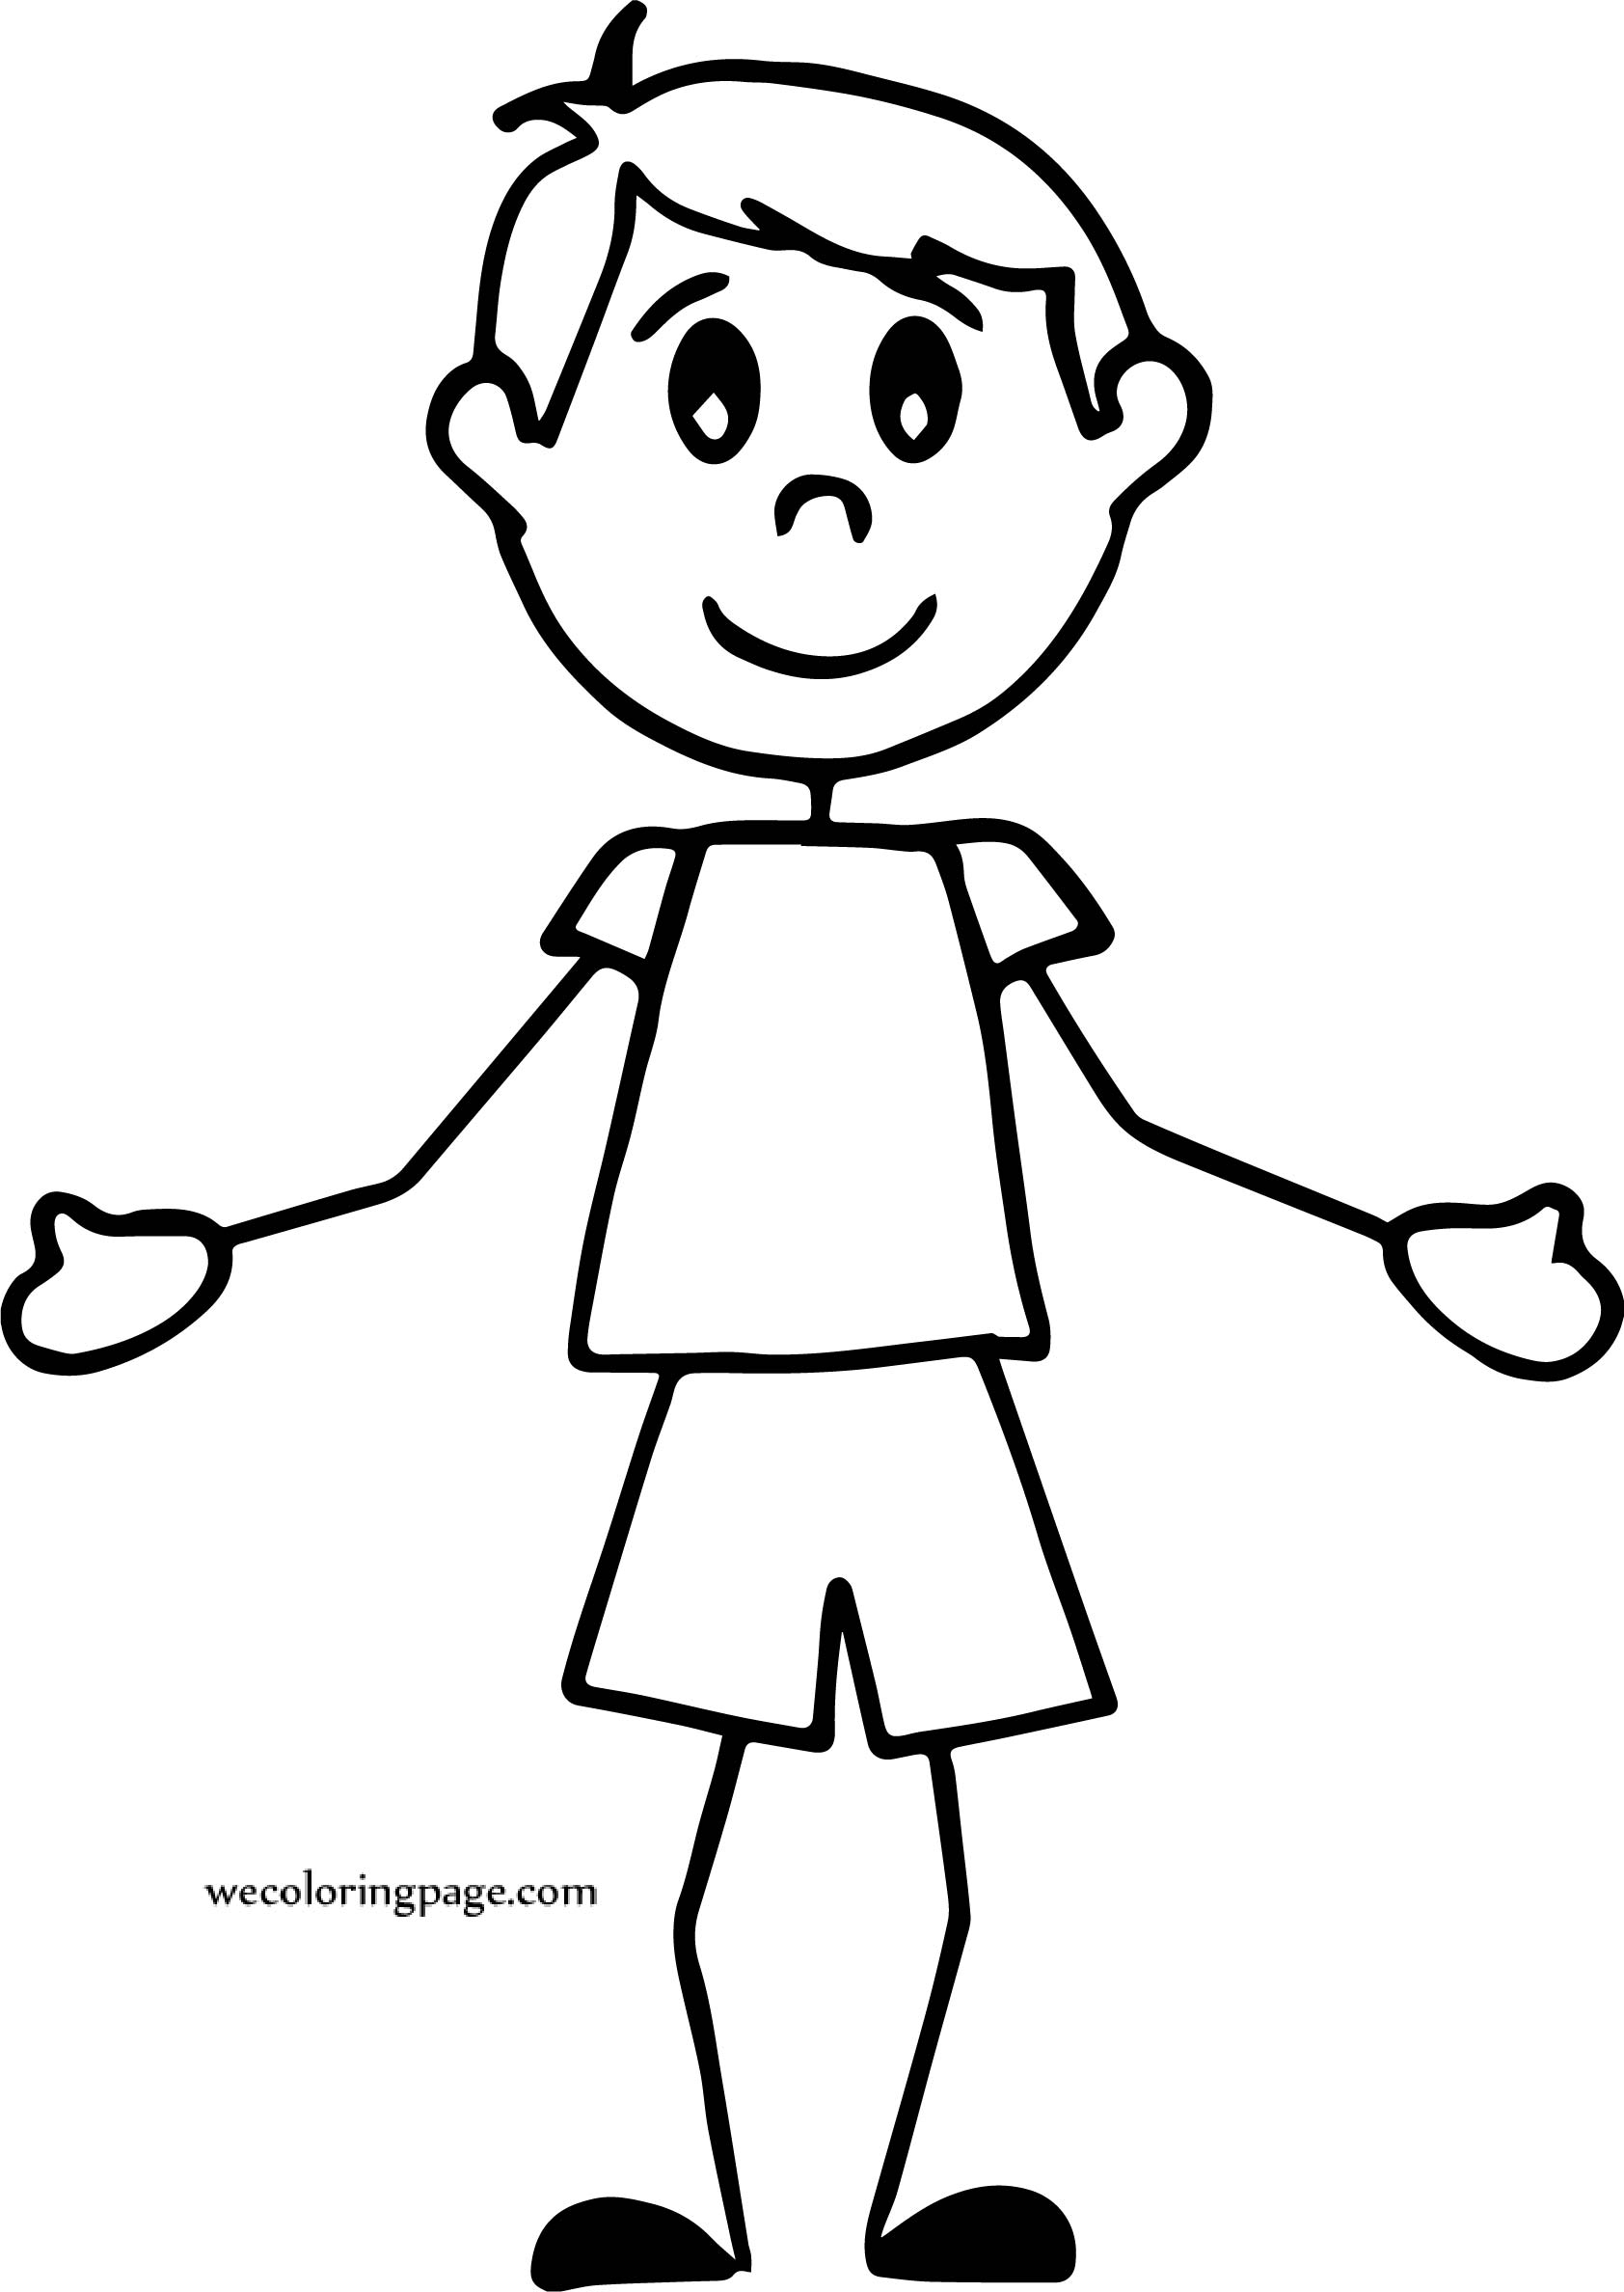 Some Stick Boy Coloring Page